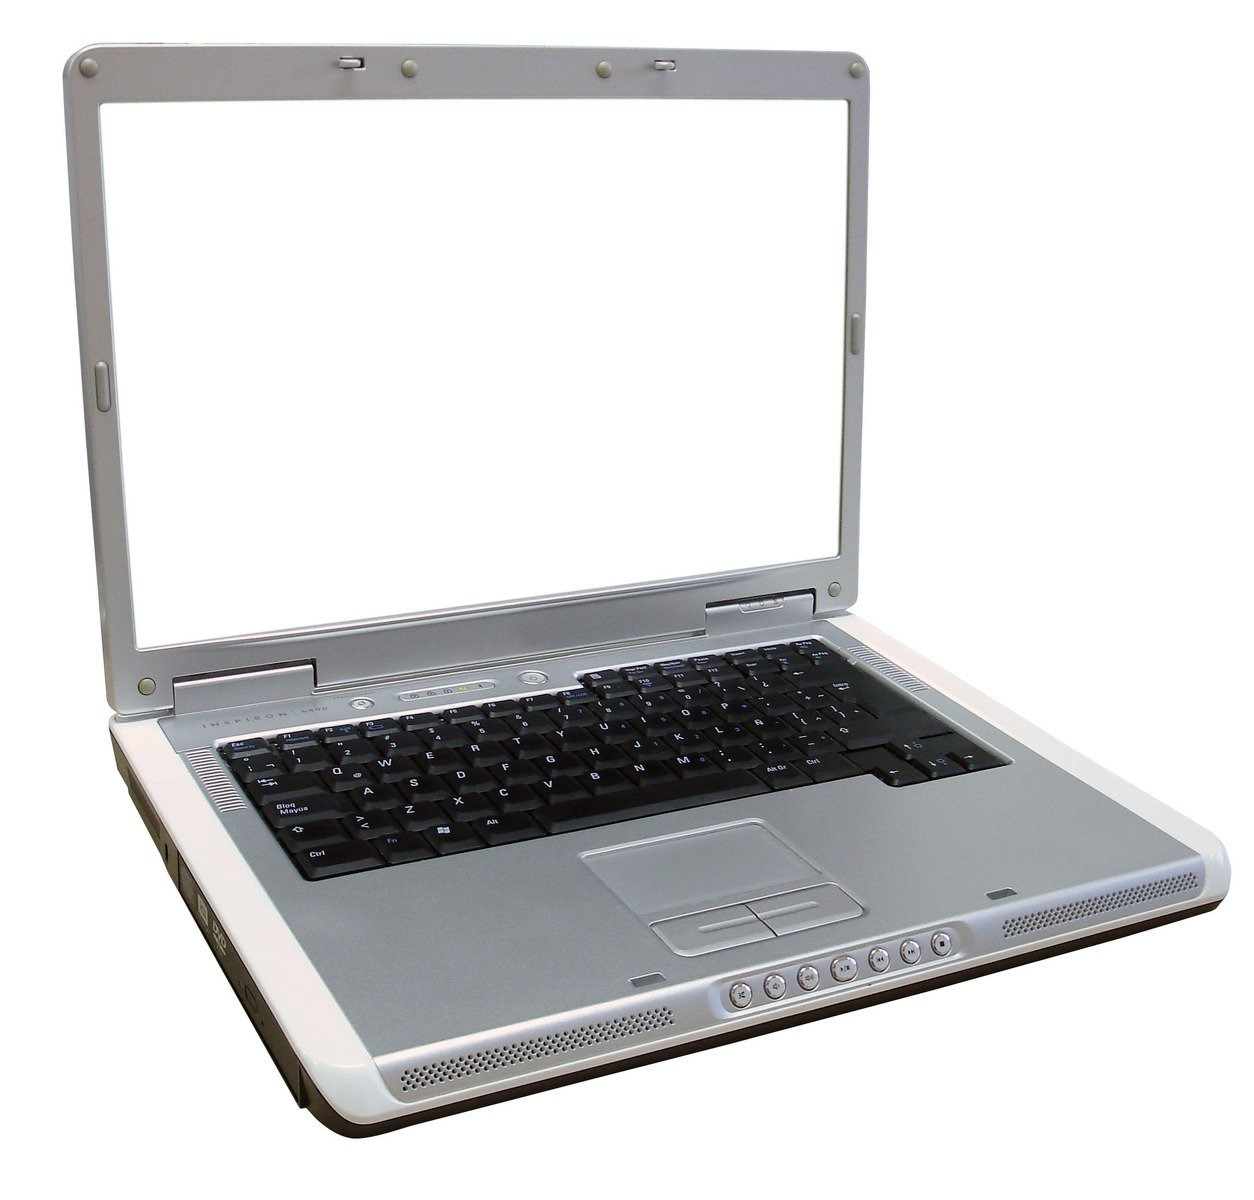 Laptop,laptop,computer,dell